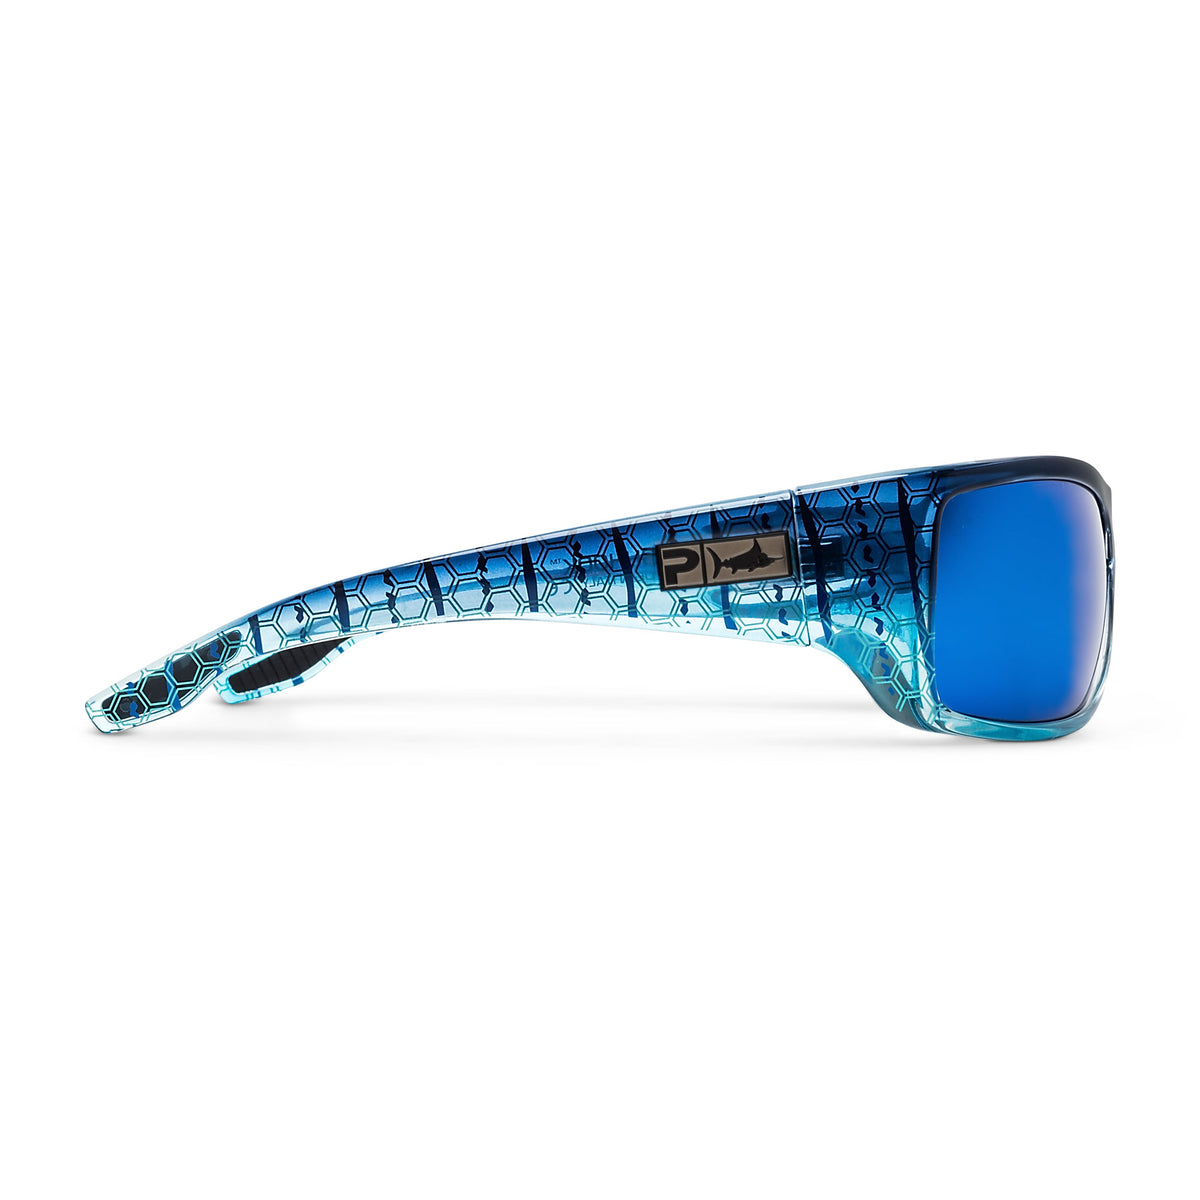 Fish Hook LTD - Polarized Mineral Glass™ Big Image - 3